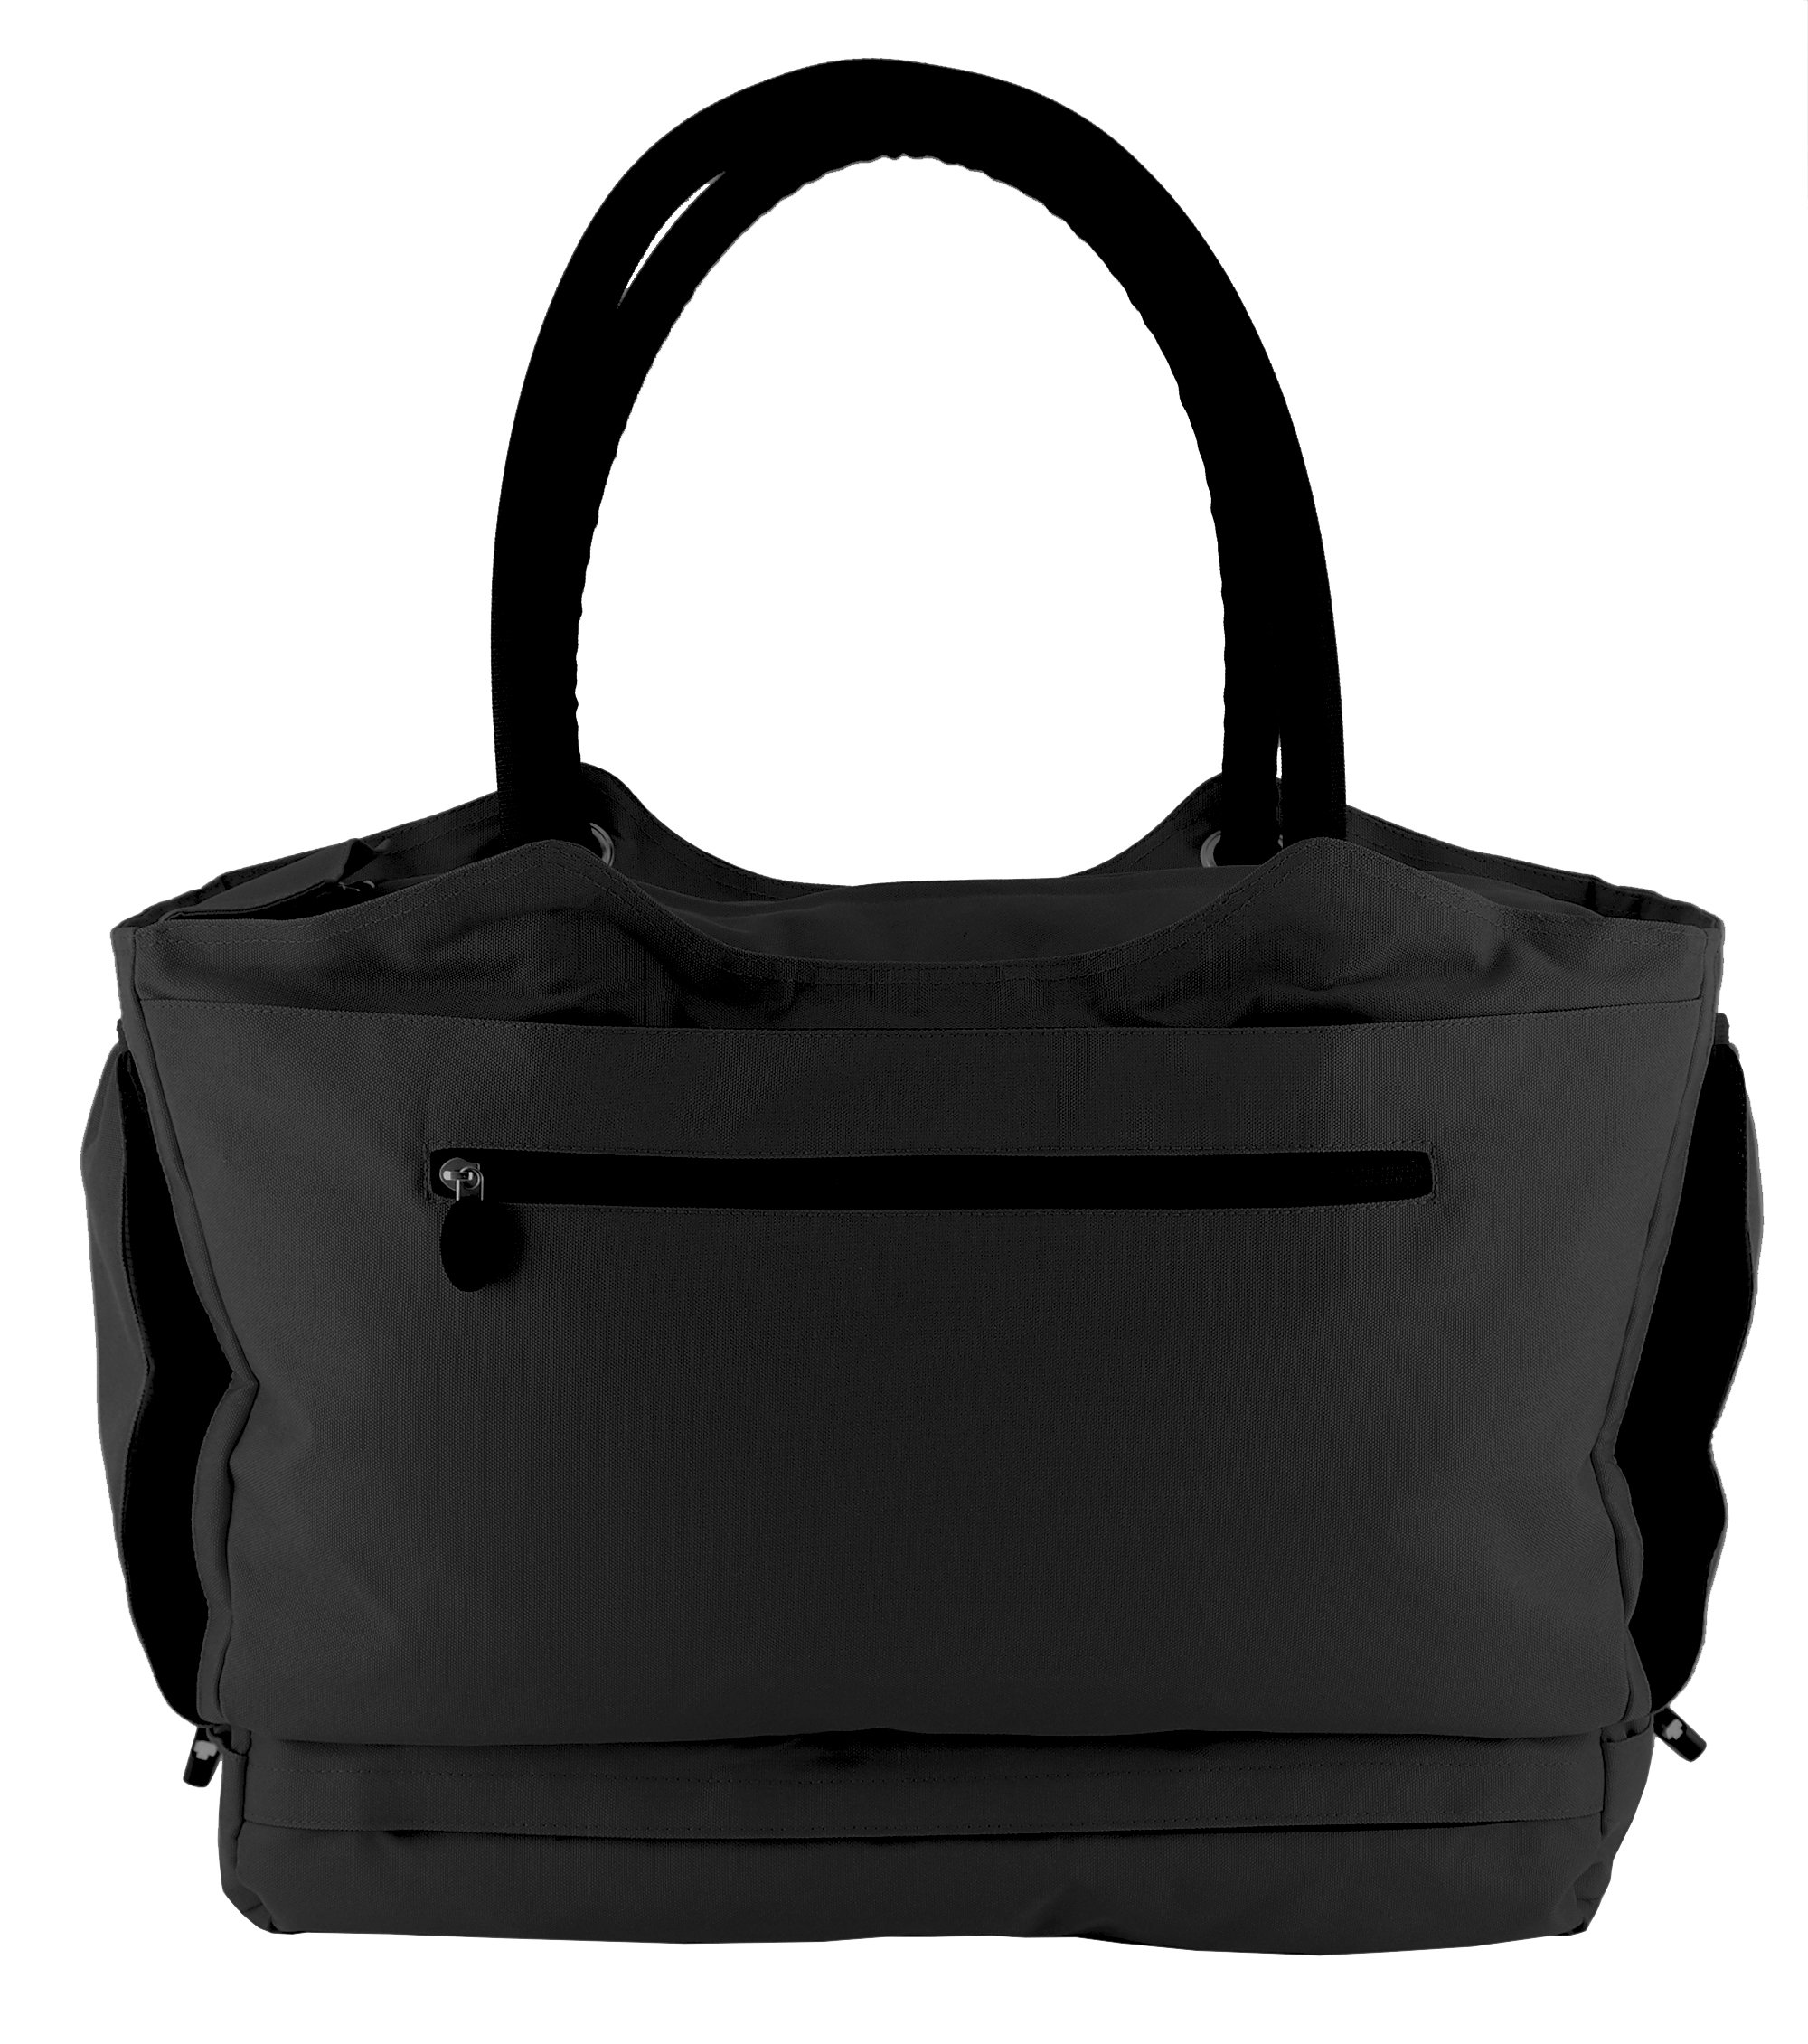 CoolBag Gen 2 Locking Anti-Theft Travel Tote With Insulated Cooler Compartment (Bermuda Black)